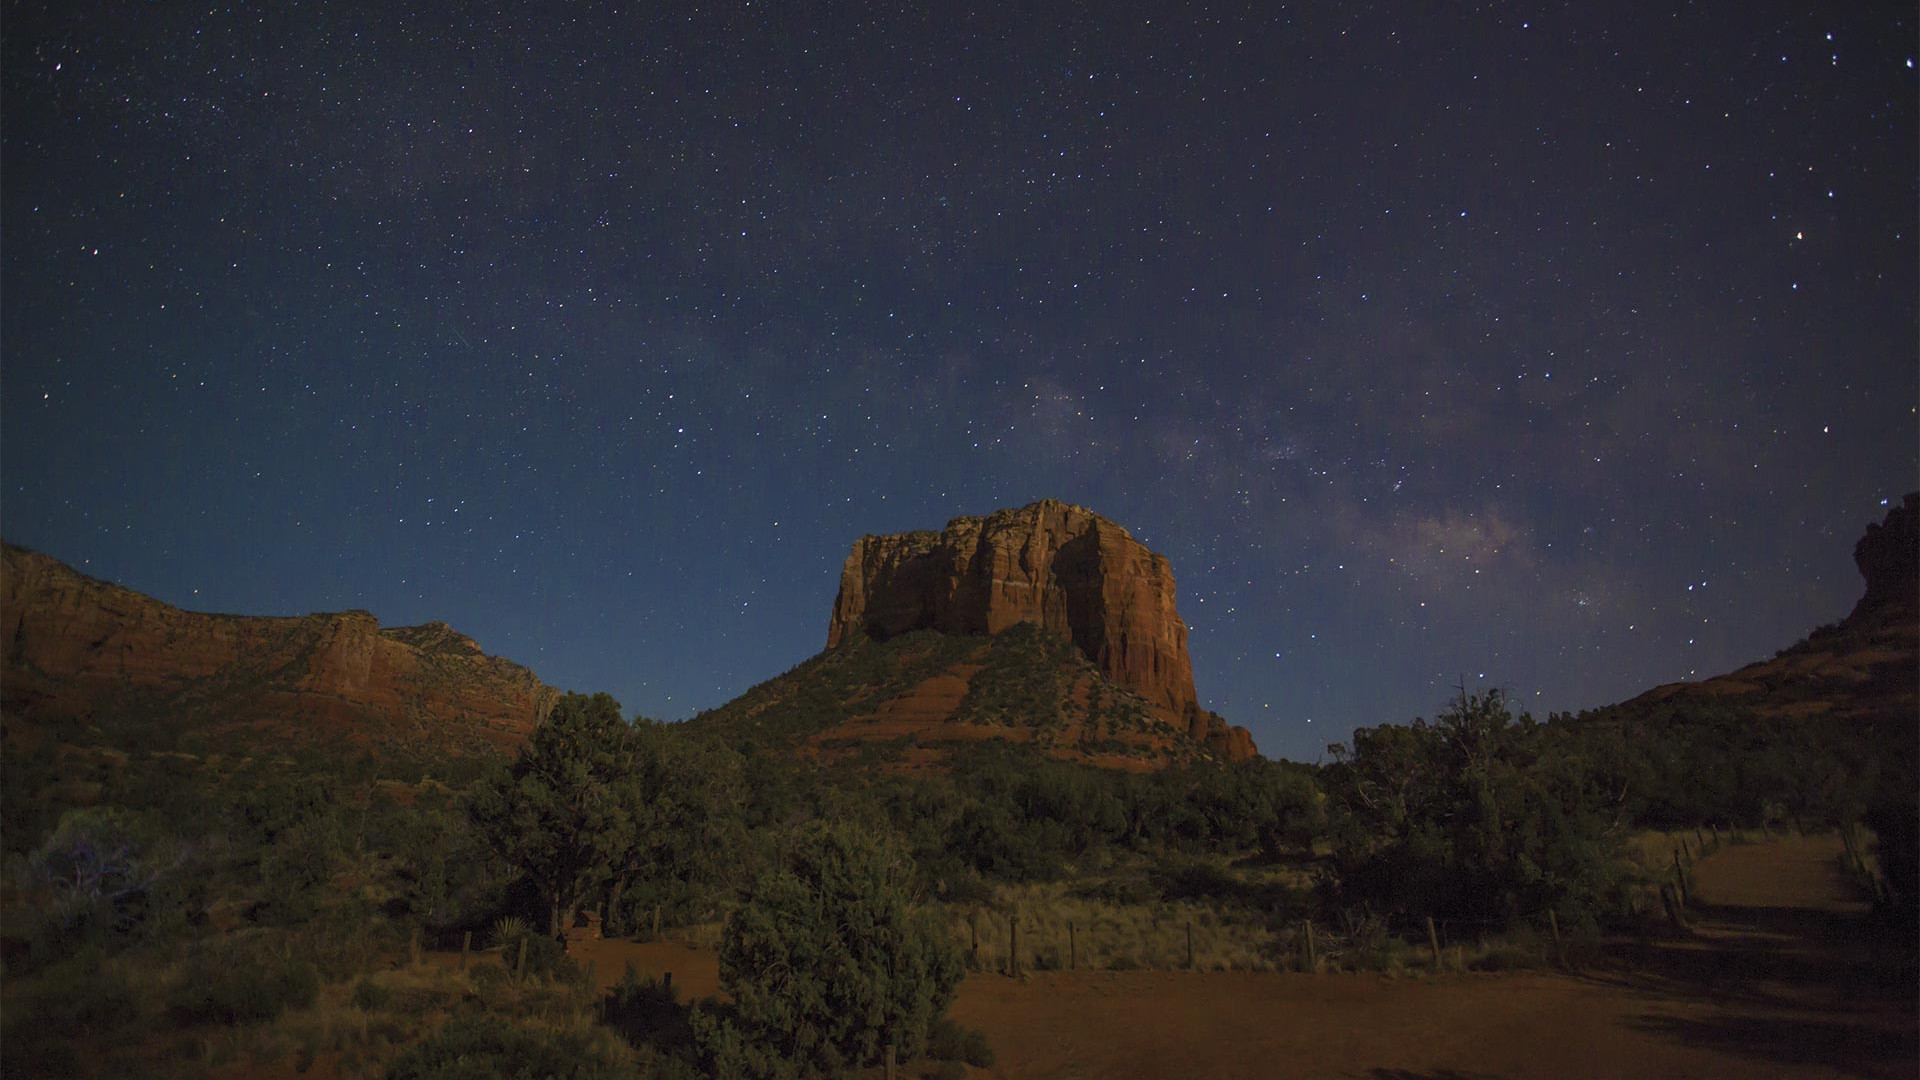 Stars above a butte in Sedona, Arizona